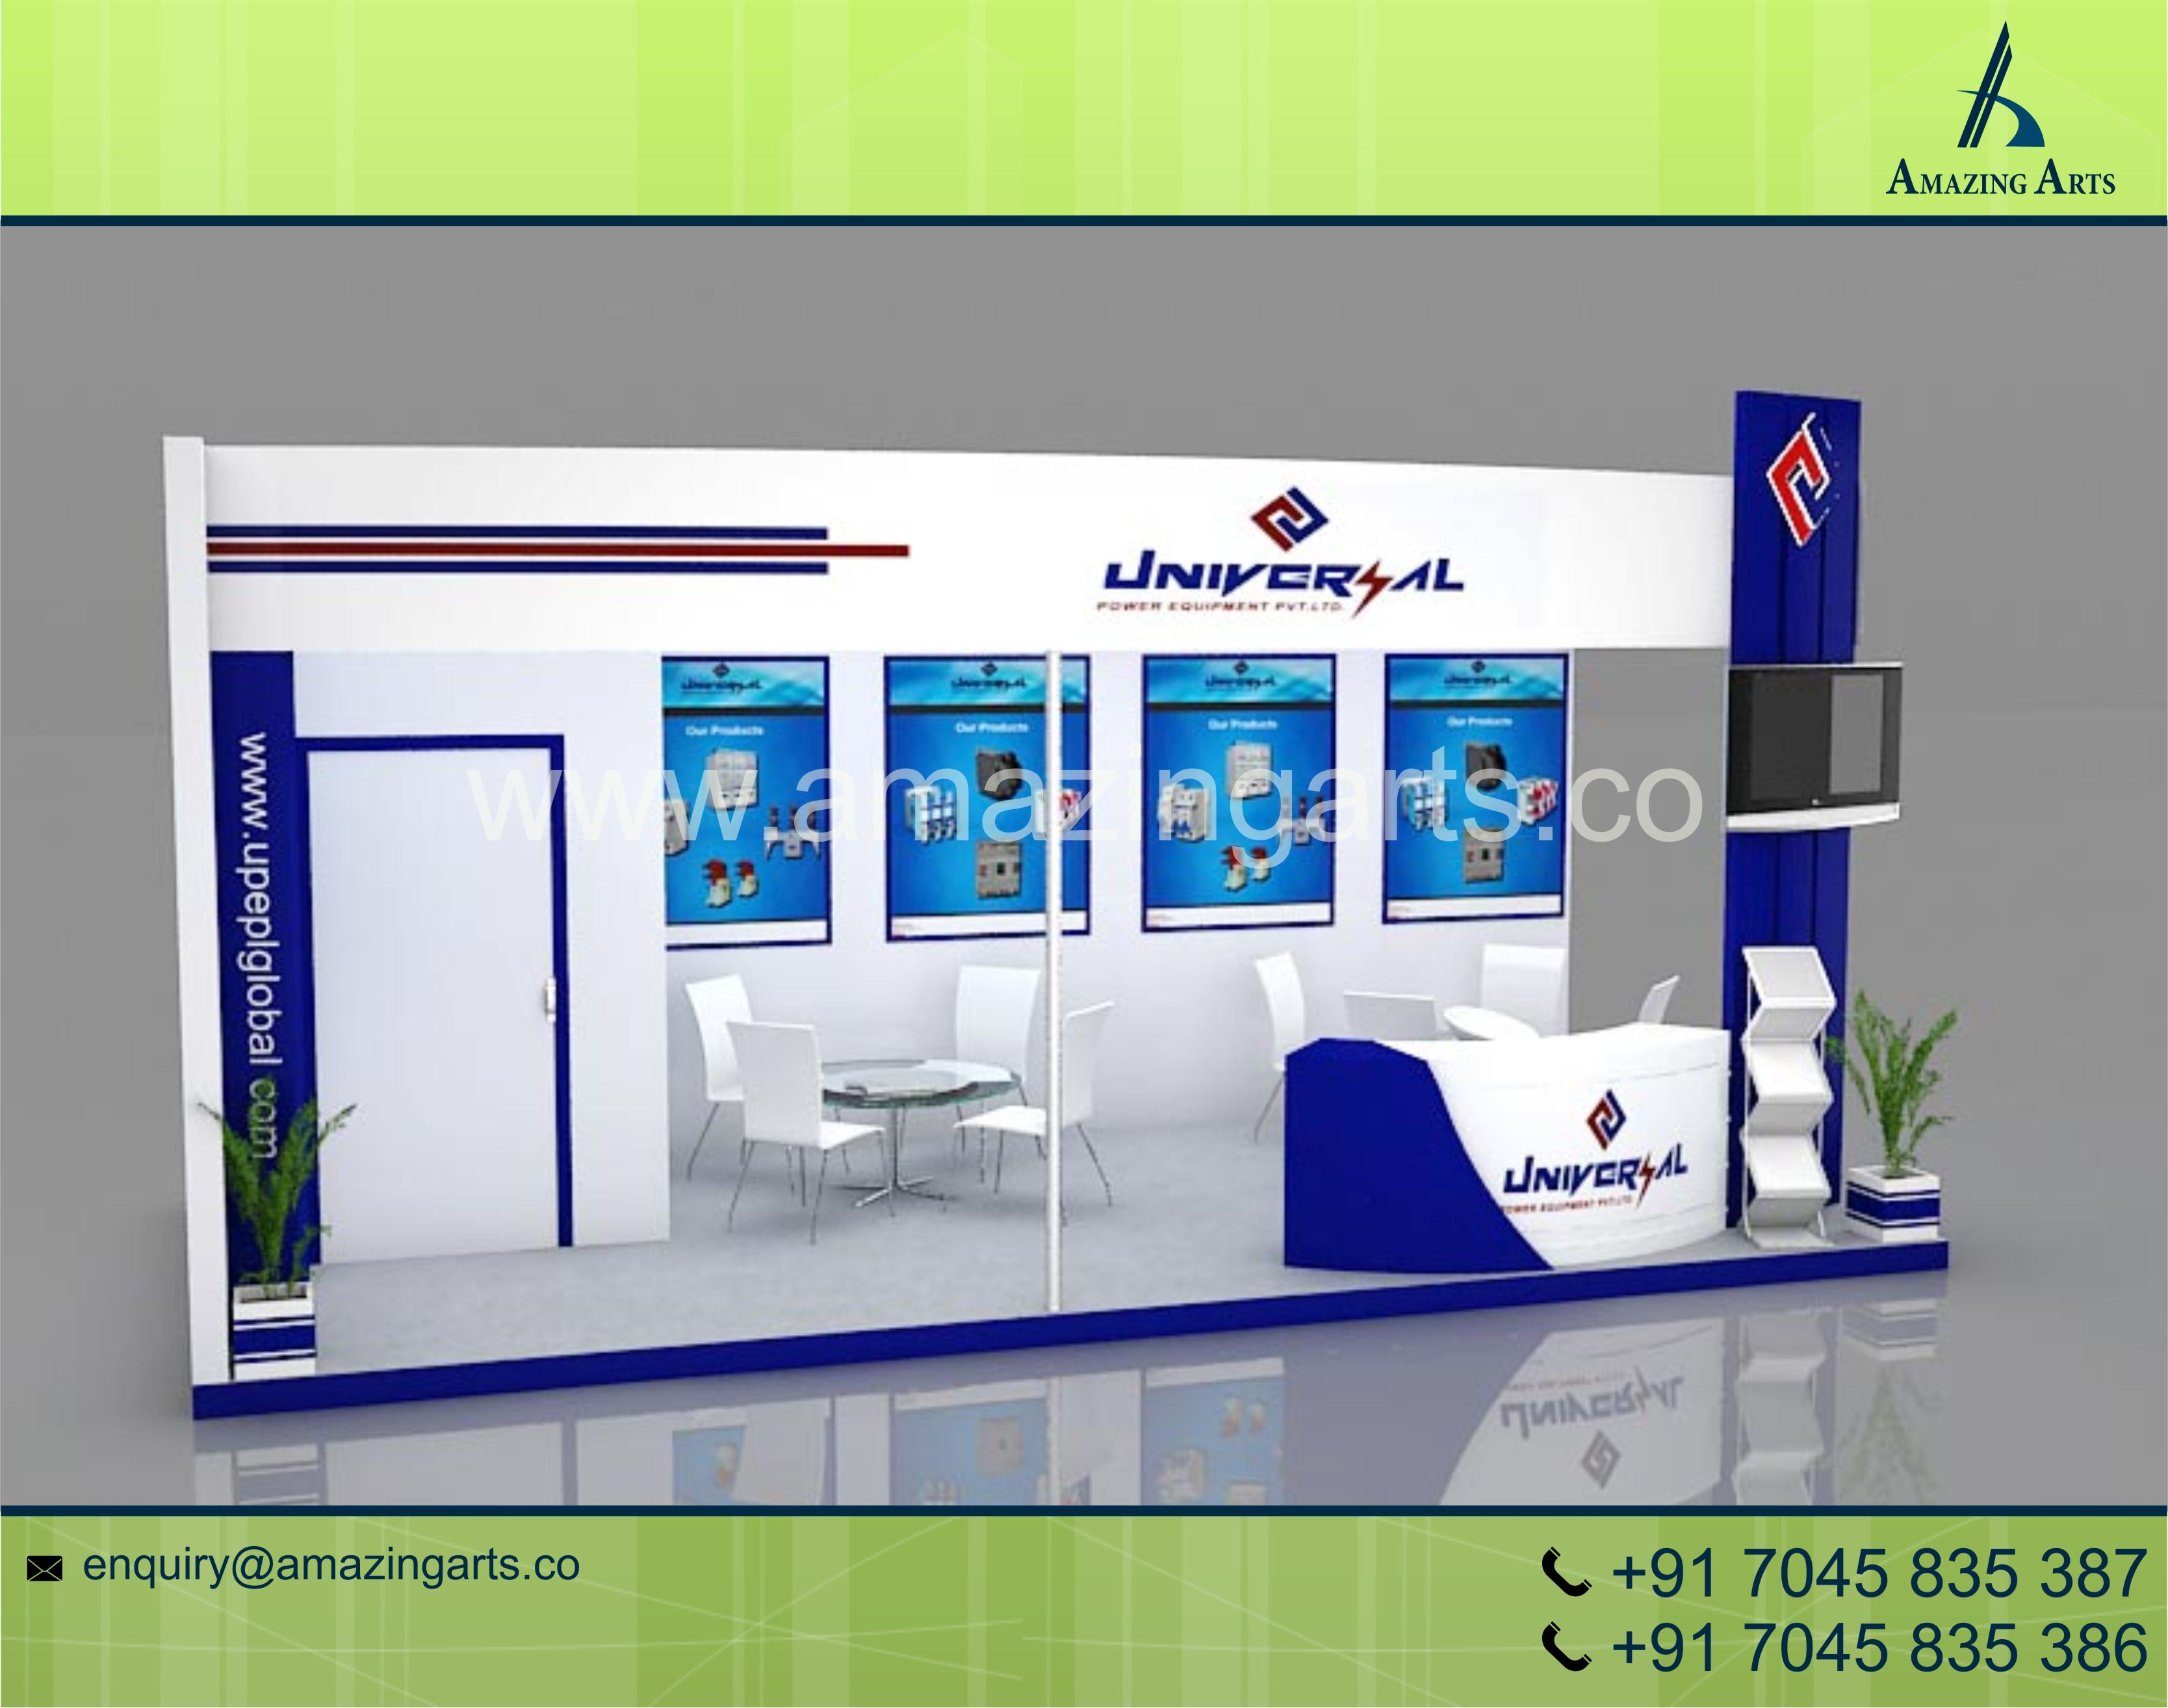 Exhibition Stall Mockup : Stall images usseek